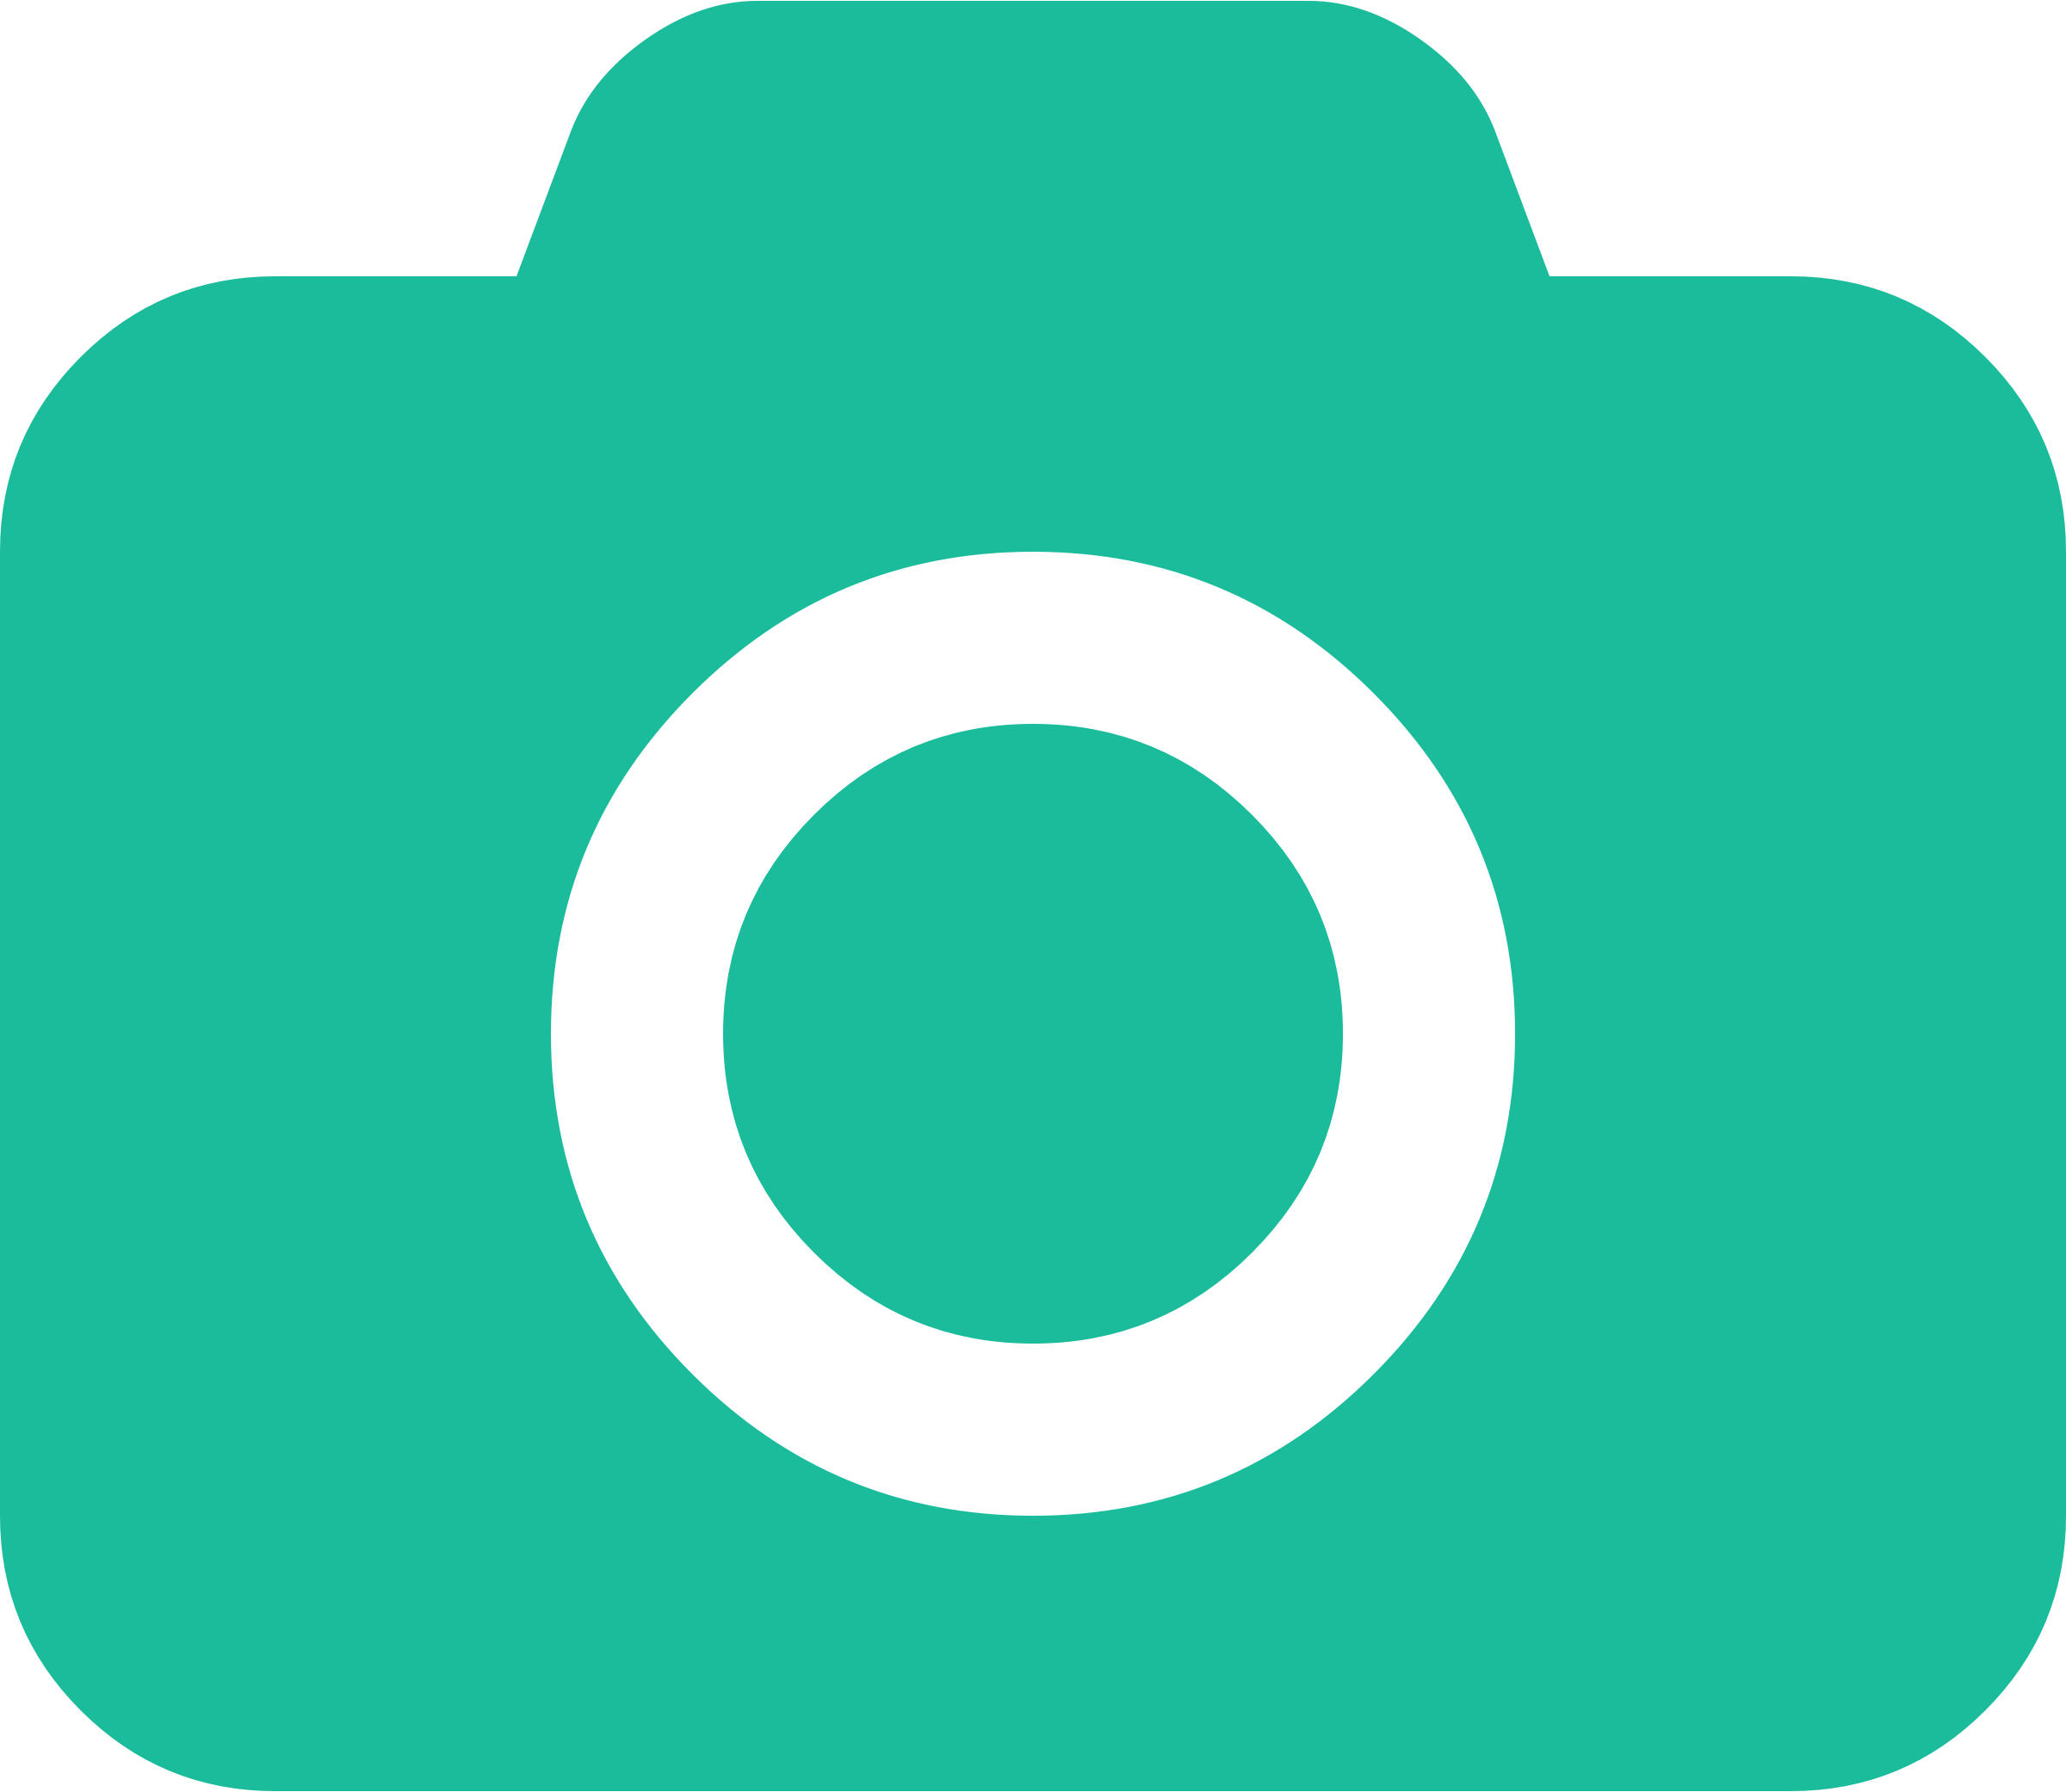 lol (camera icon) by onepix